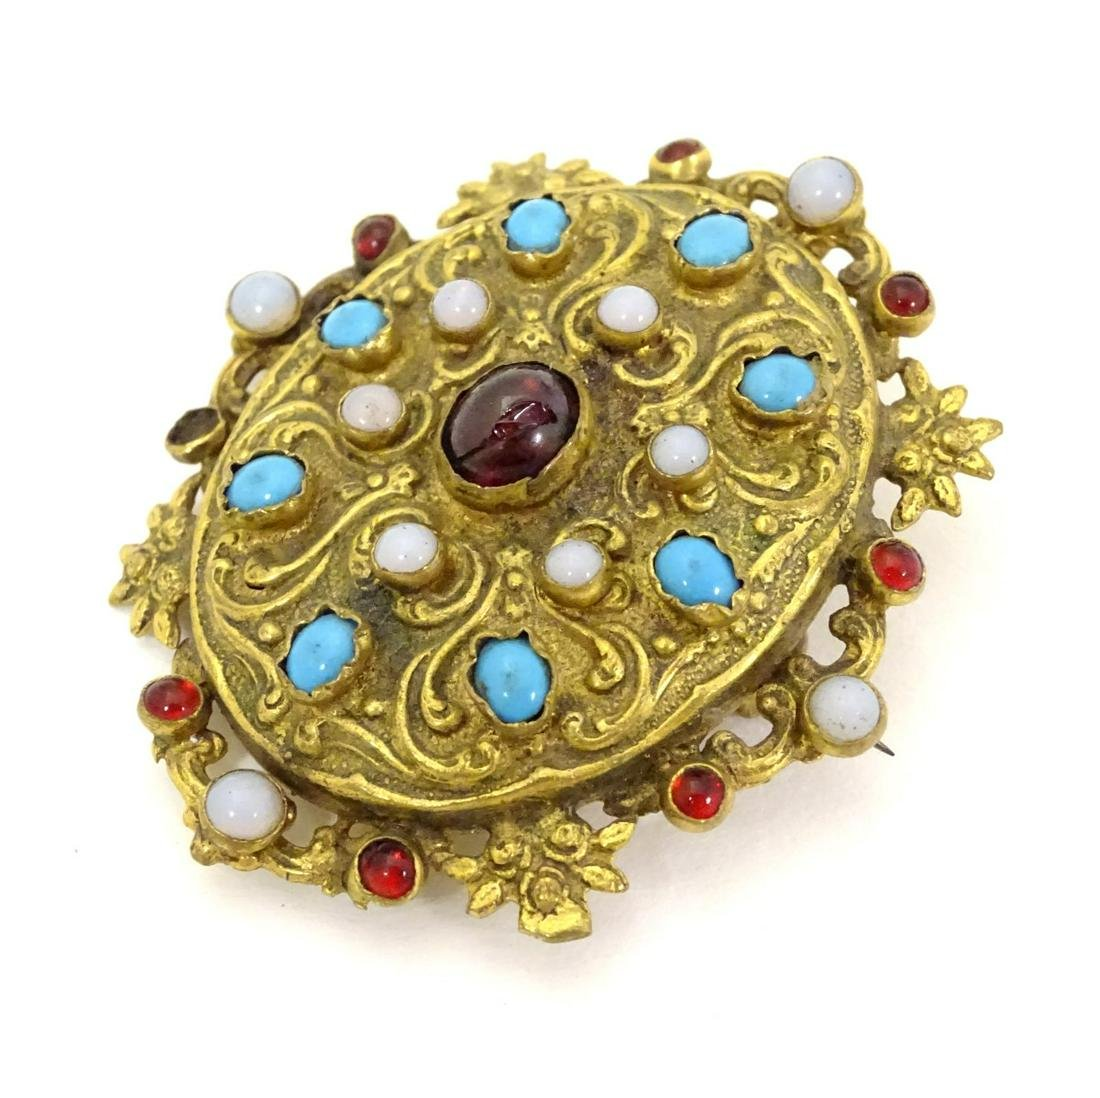 A gilt metal brooch set with moonstone turquoise and